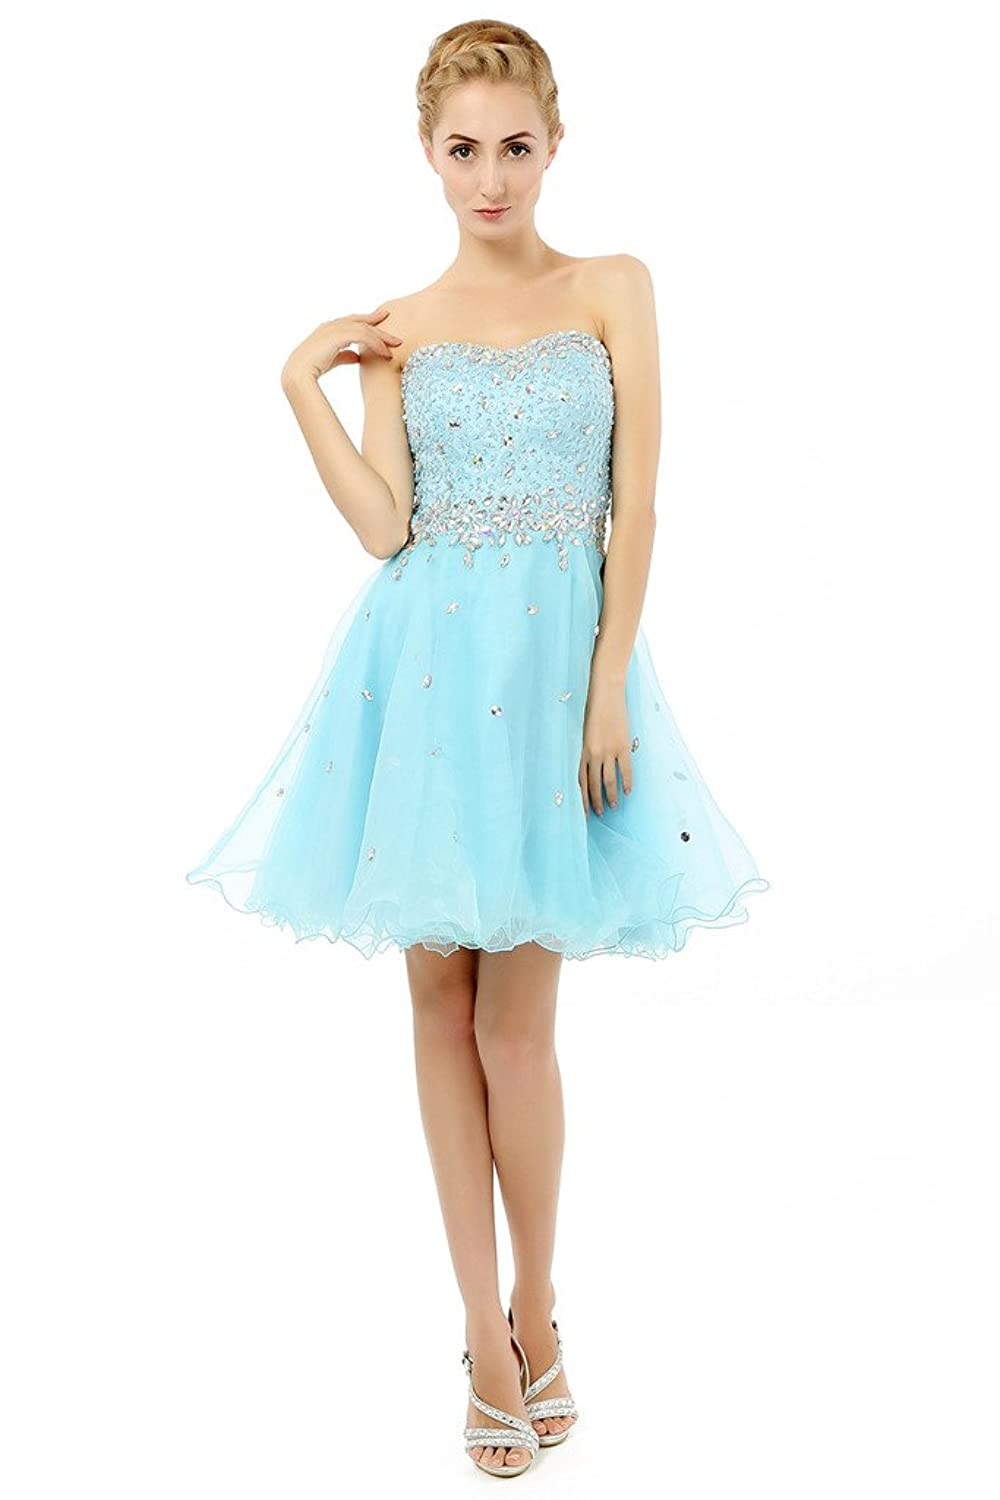 HONGFUYU Girl's Strapless Beaded Bodice Tulle Short Party Homecoming Cocktail Prom Dress